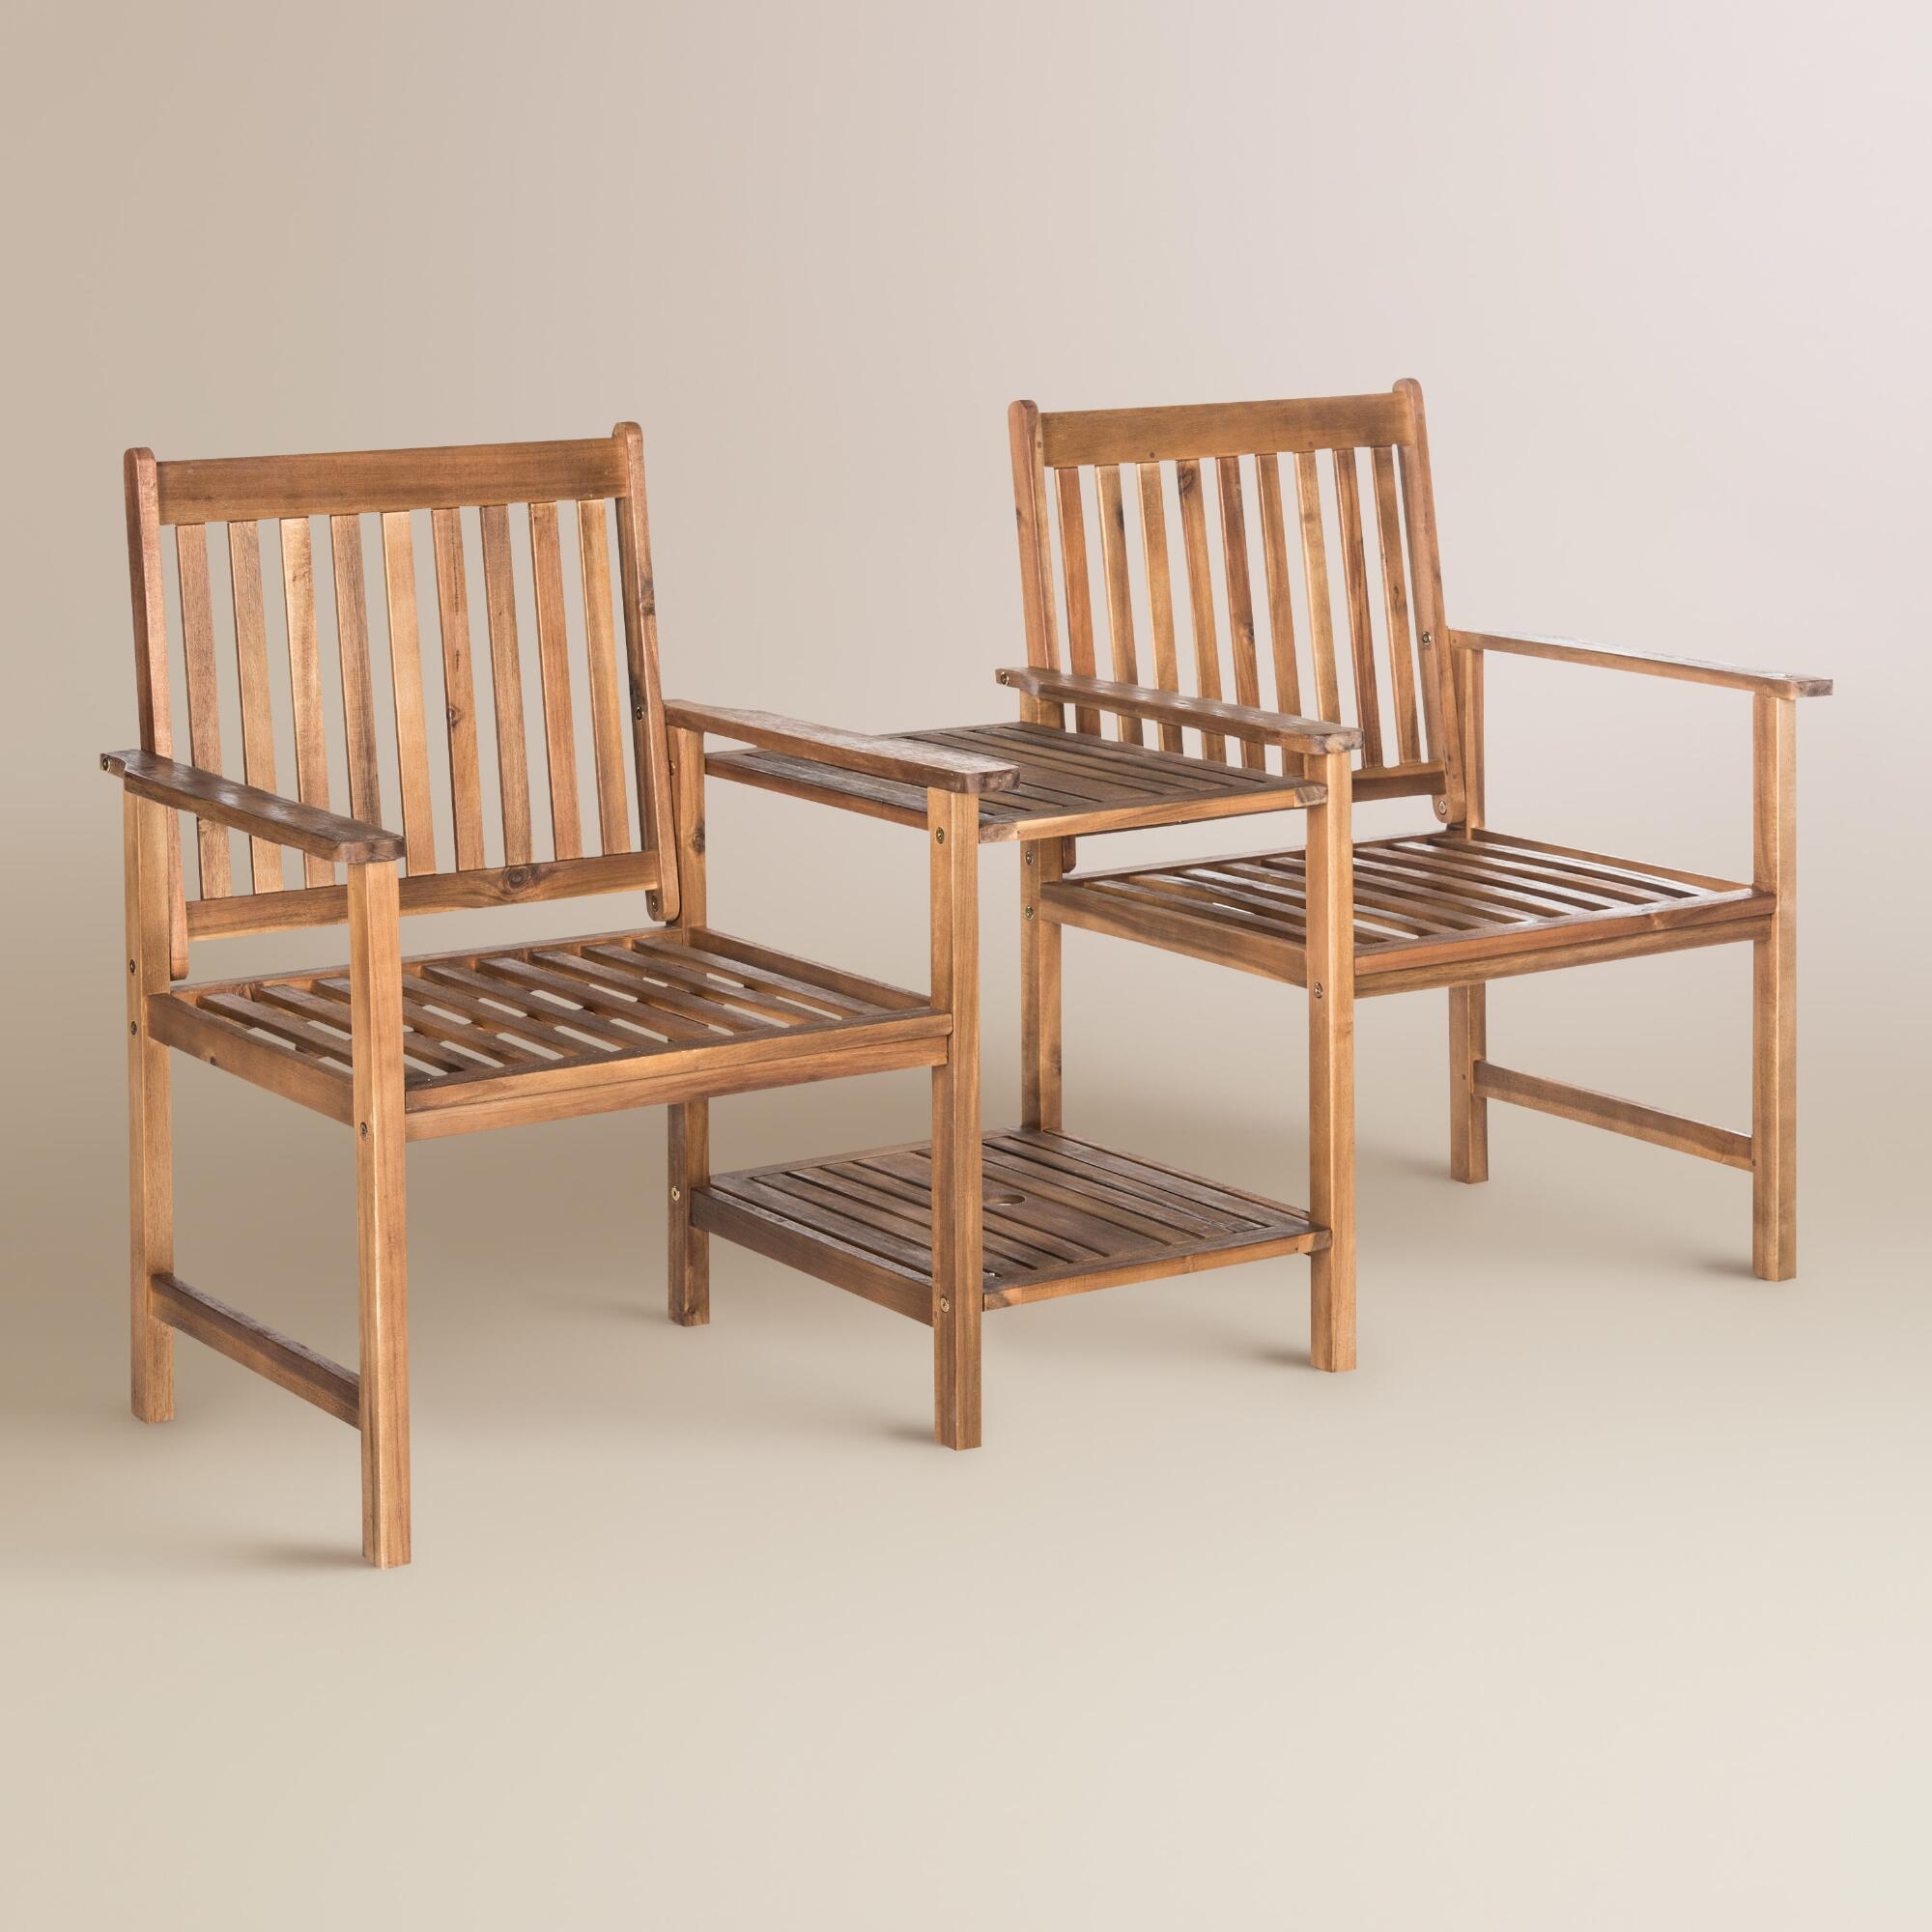 Loft Bench Seat Natural: Natural Brown Wood Twin Seat Outdoor Bench